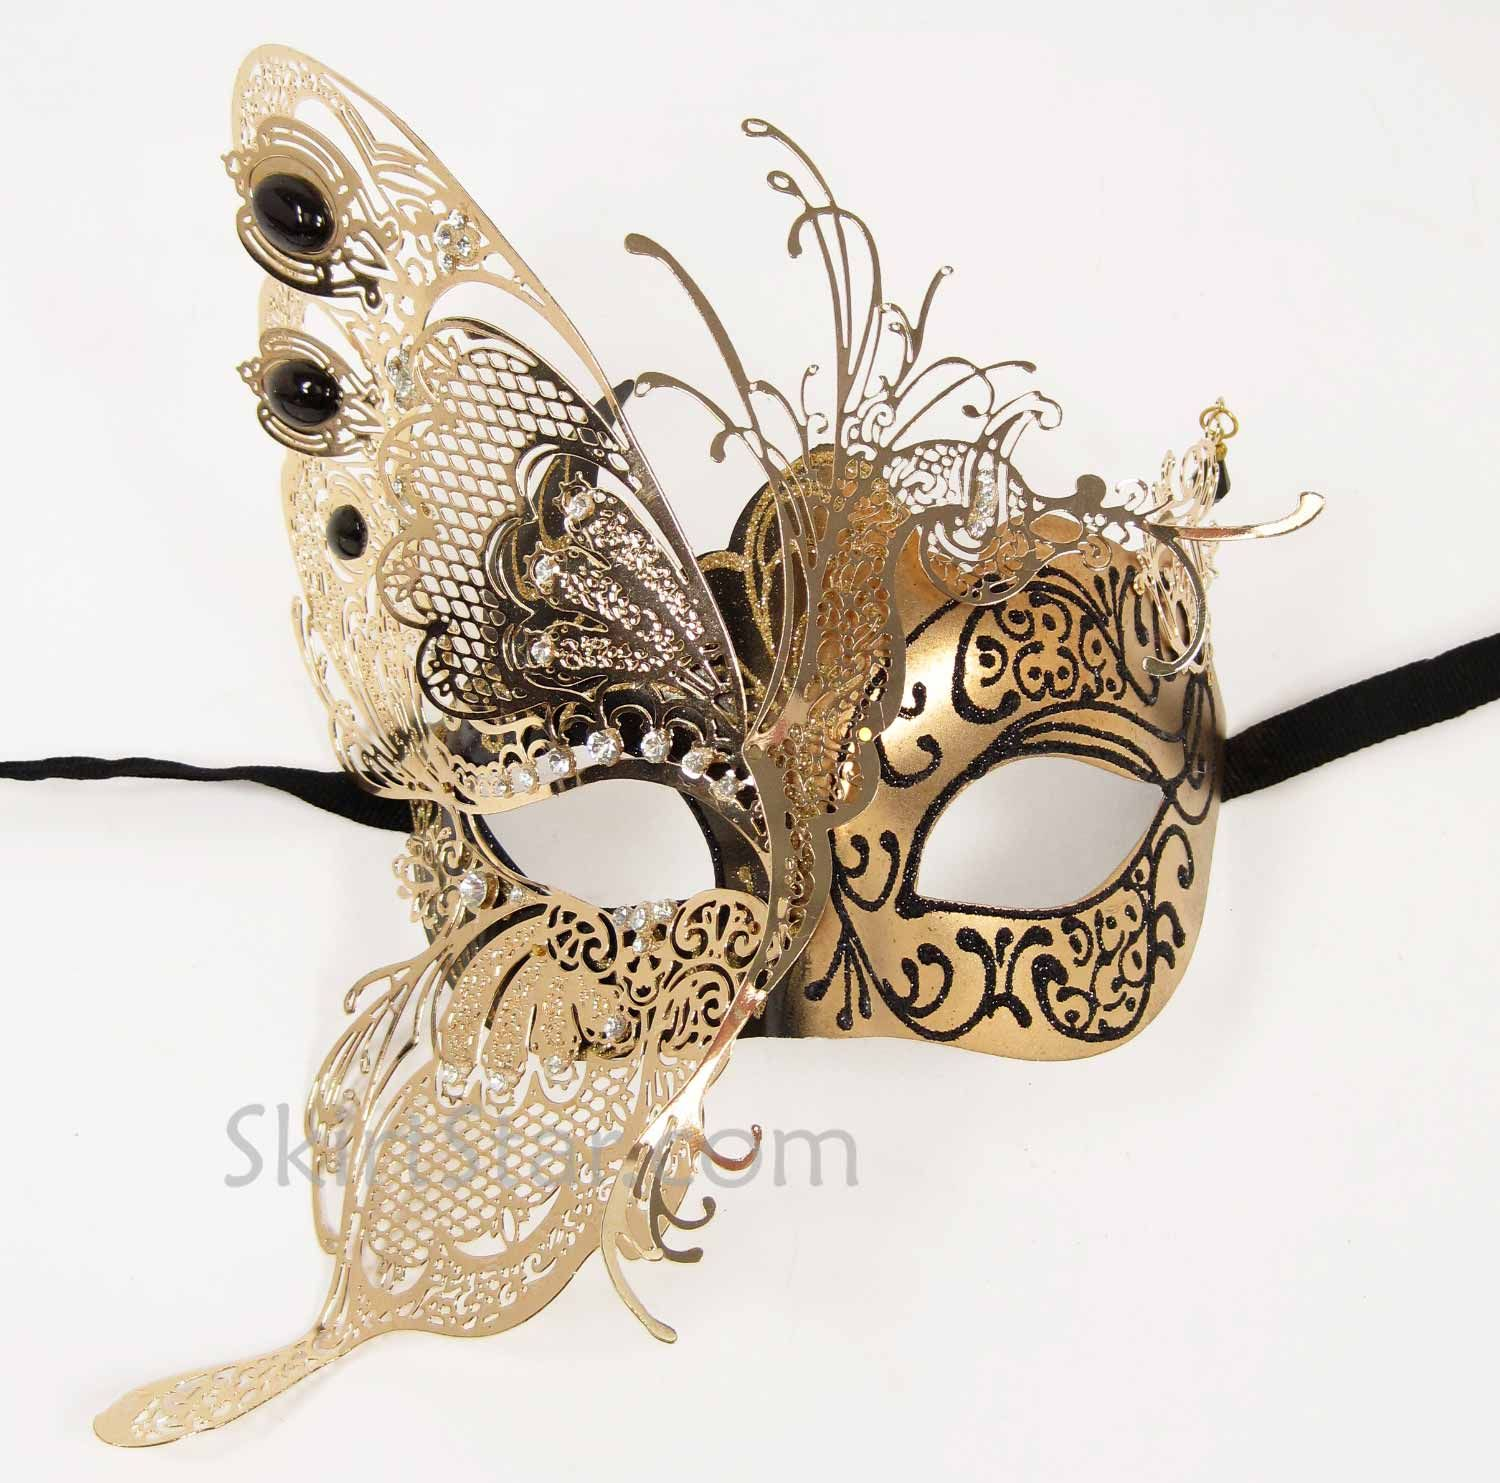 Masquerade mask masquerade mask vine mask metal lace masquerade - Black White And Gold Masks This Beautiful Masquerade Mask1500